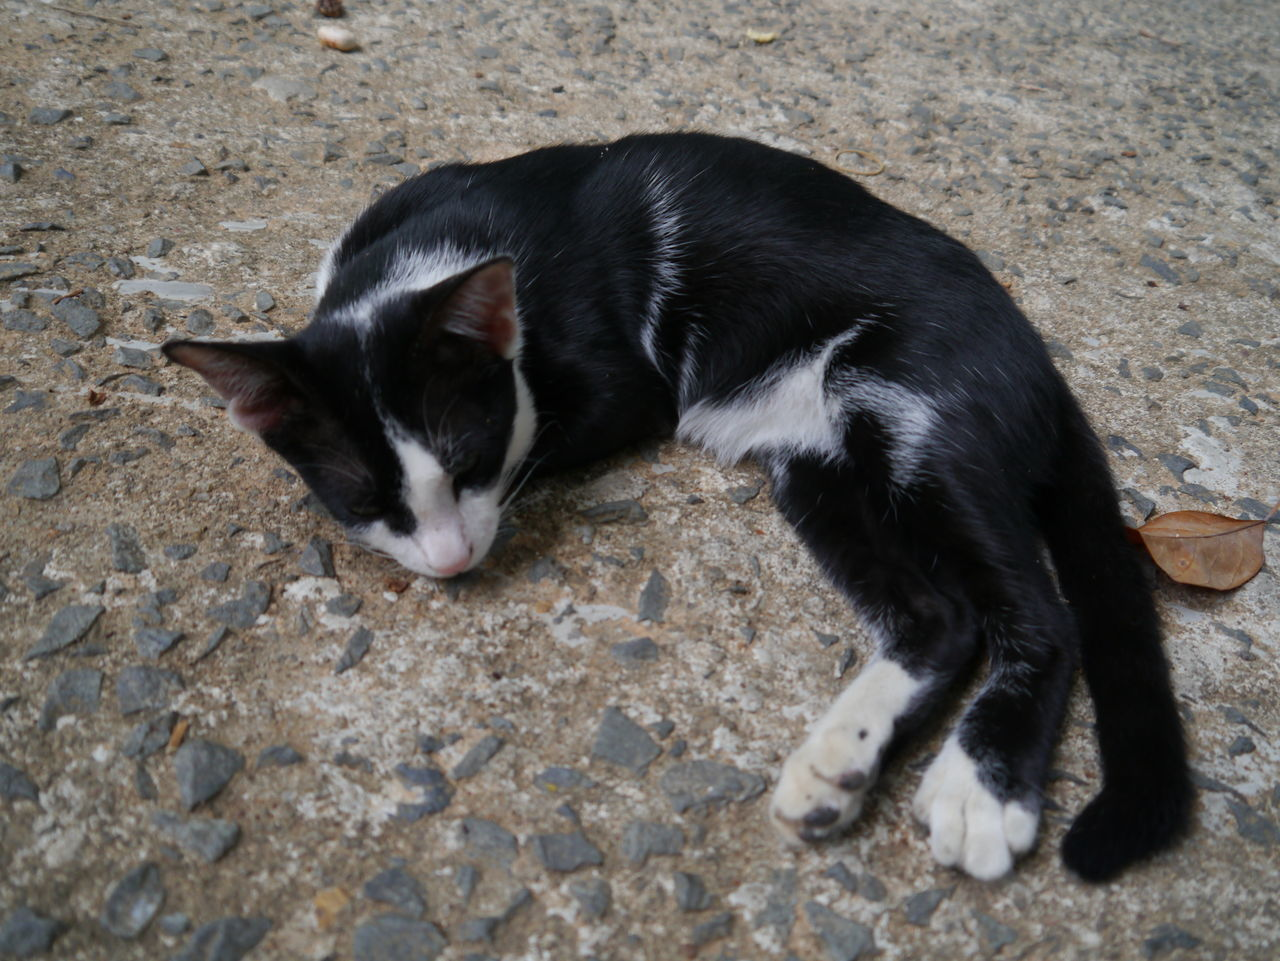 domestic animals, animal themes, pets, mammal, domestic cat, one animal, feline, no people, day, outdoors, close-up